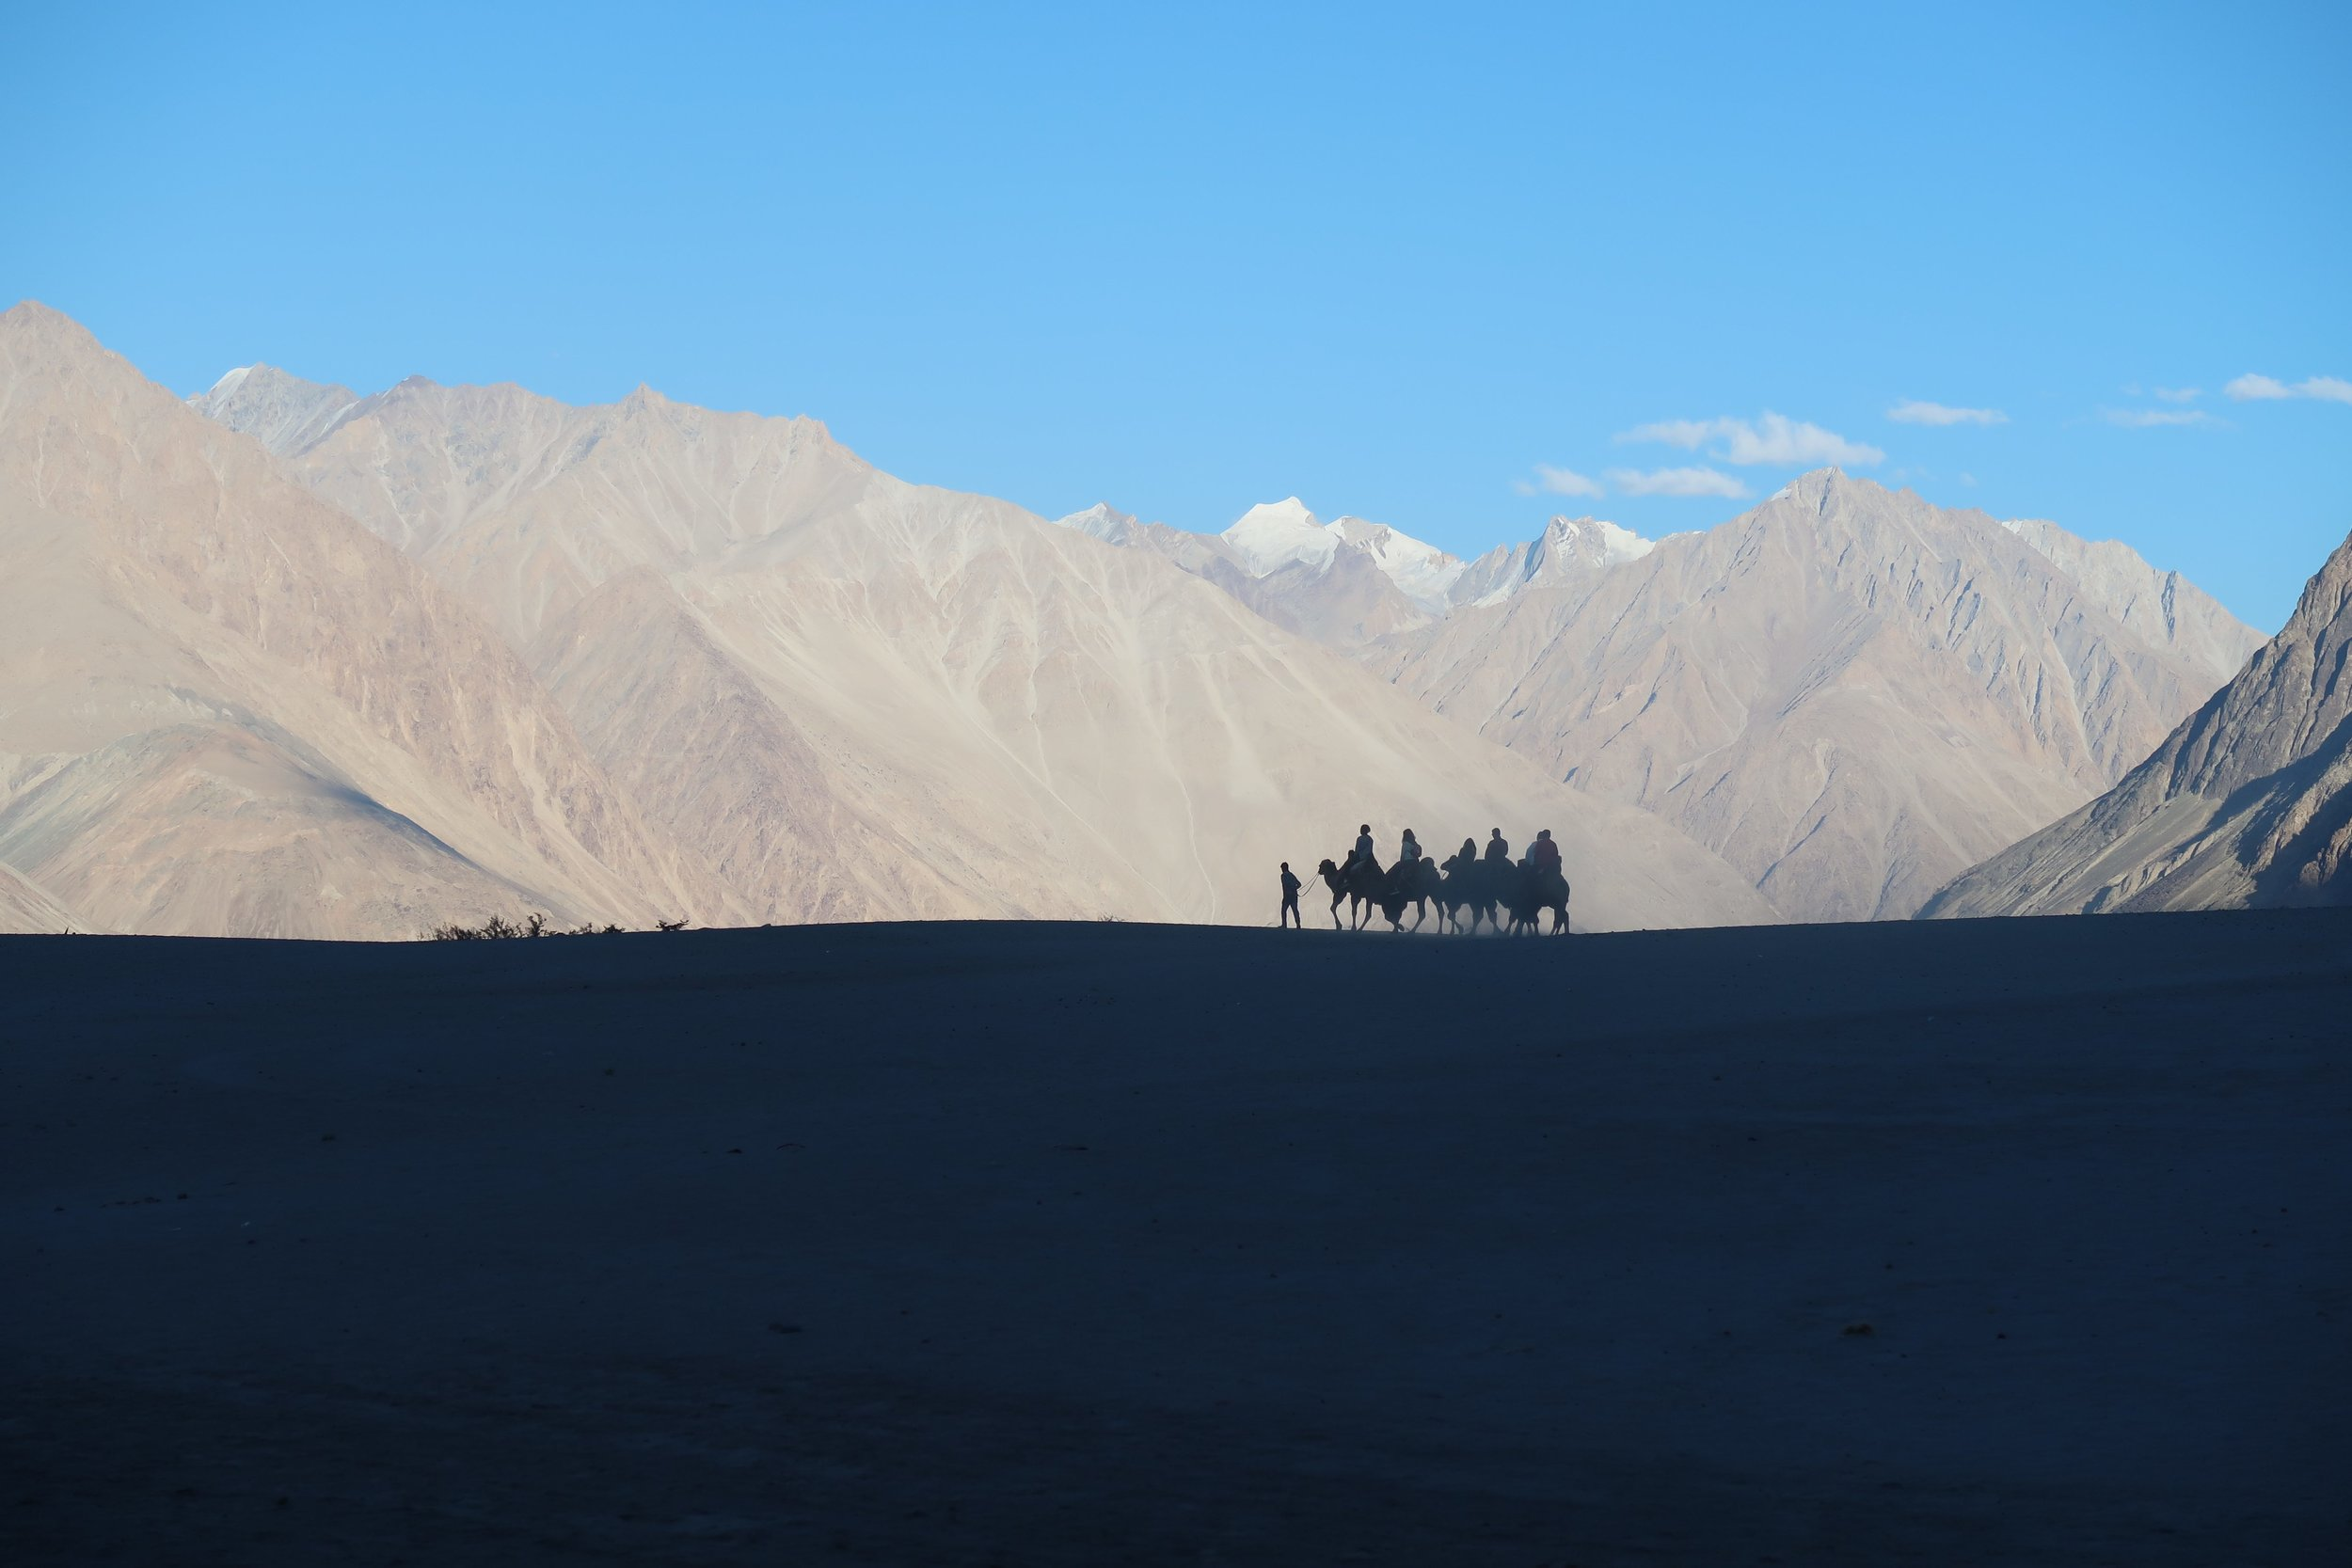 Ride a Bactrian camel over the sand dunes in Hunder - Nubra Valley in India